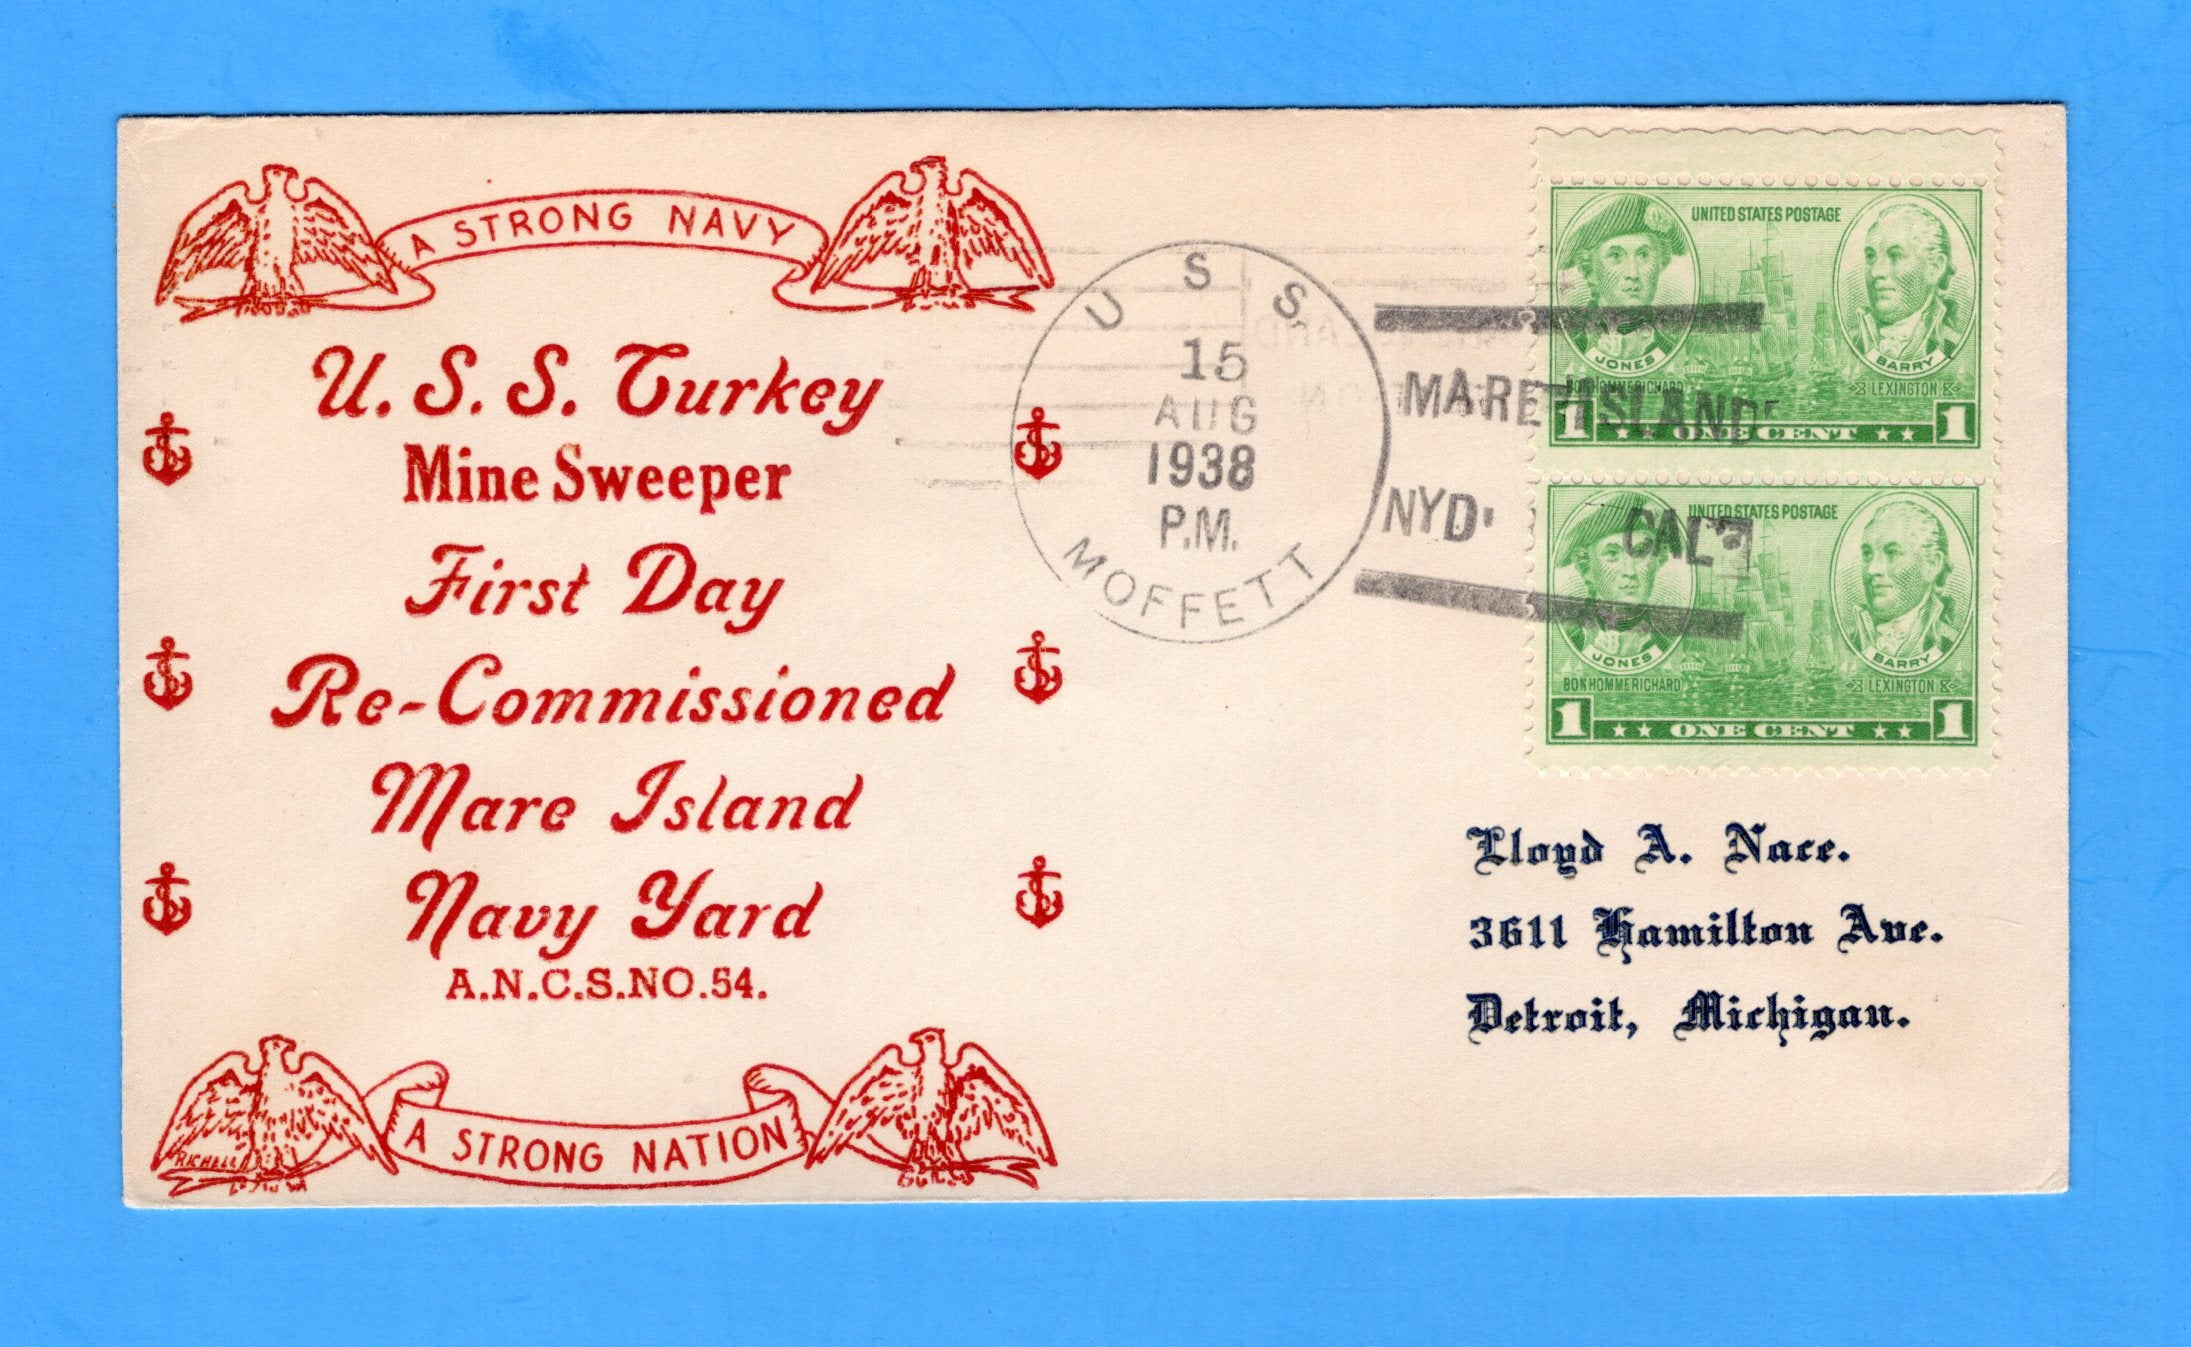 USS Turkey AM-13 Recommissioned August 15, 1938 - USS Moffett Cancel - Raised Print Cachet